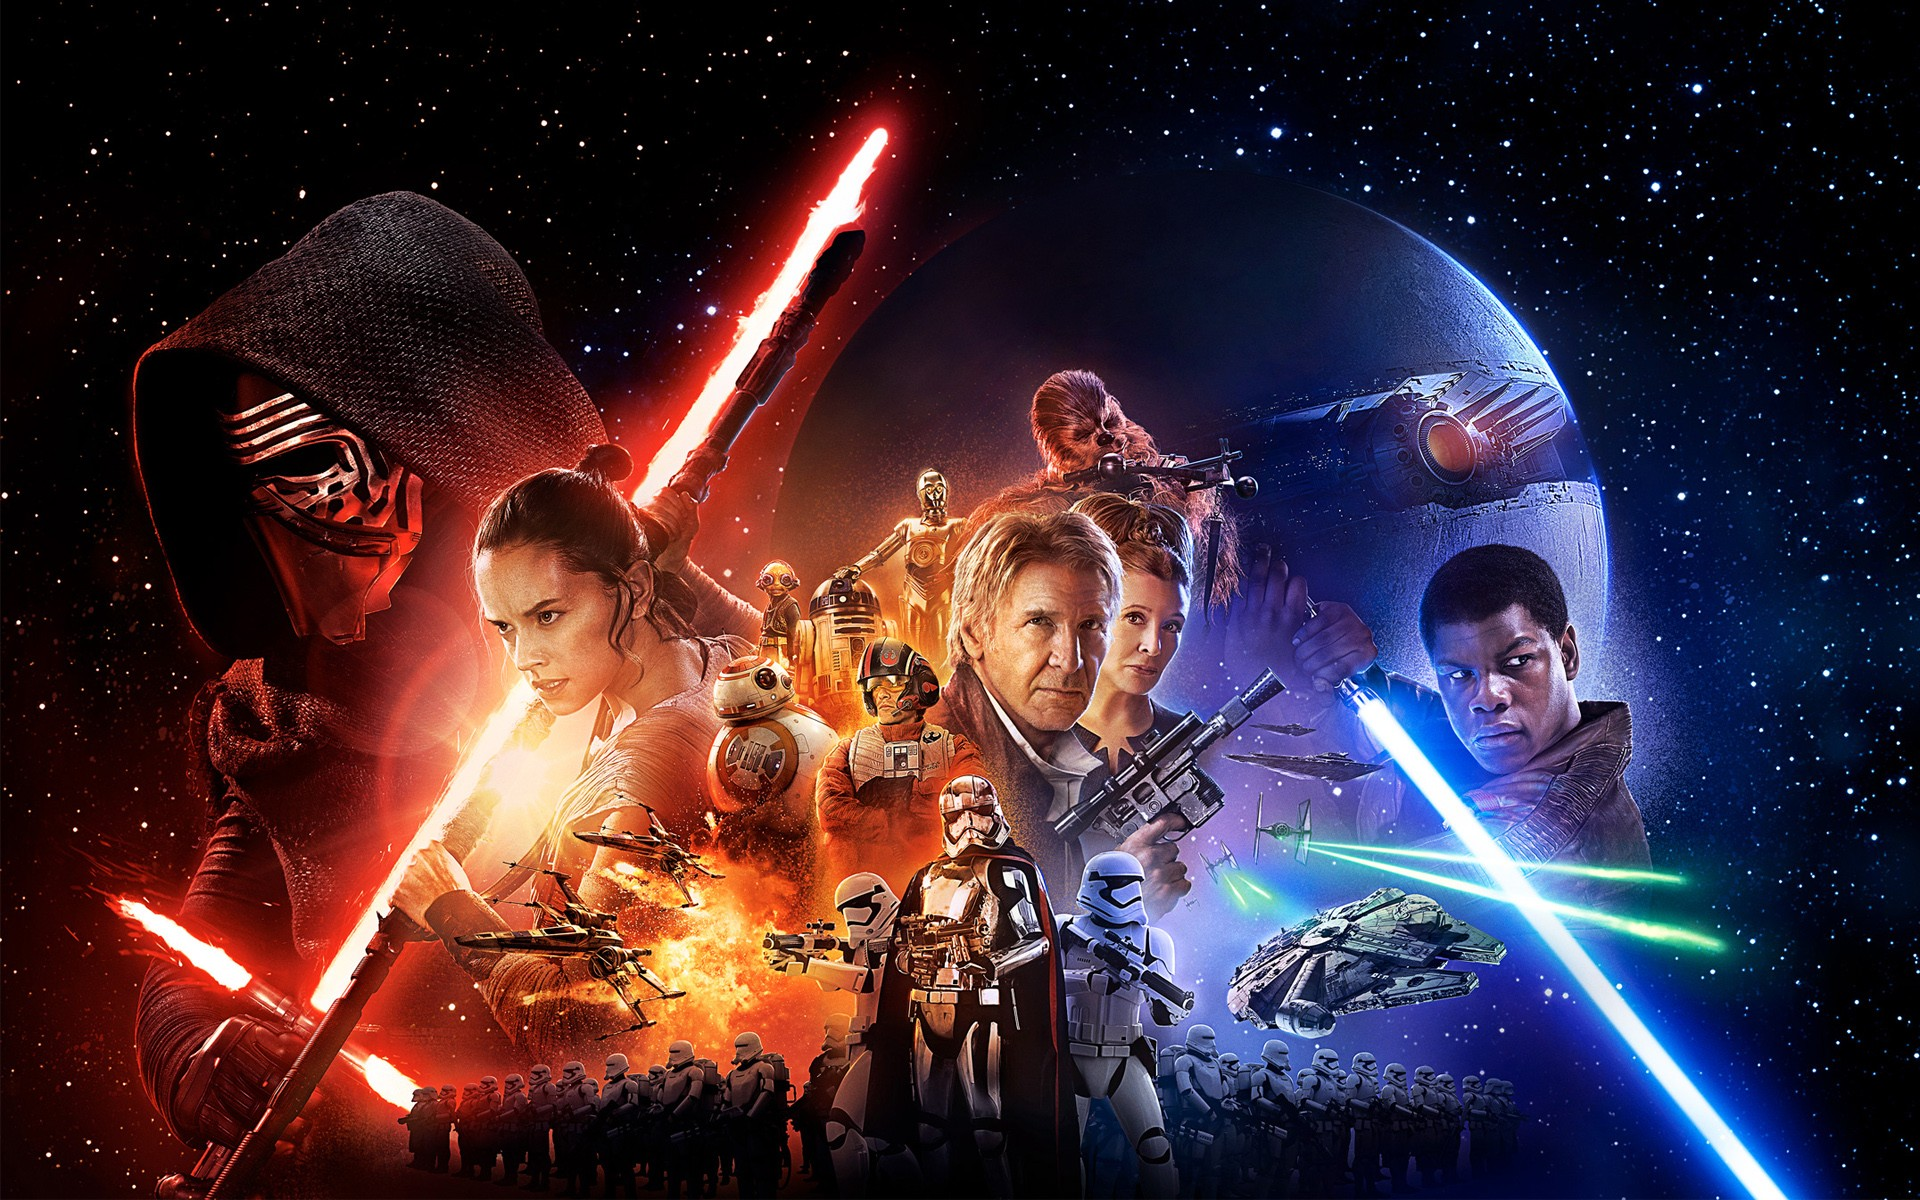 Star Wars Episode vii The Force Awakens Movie   New HD Wallpapers 1920x1200